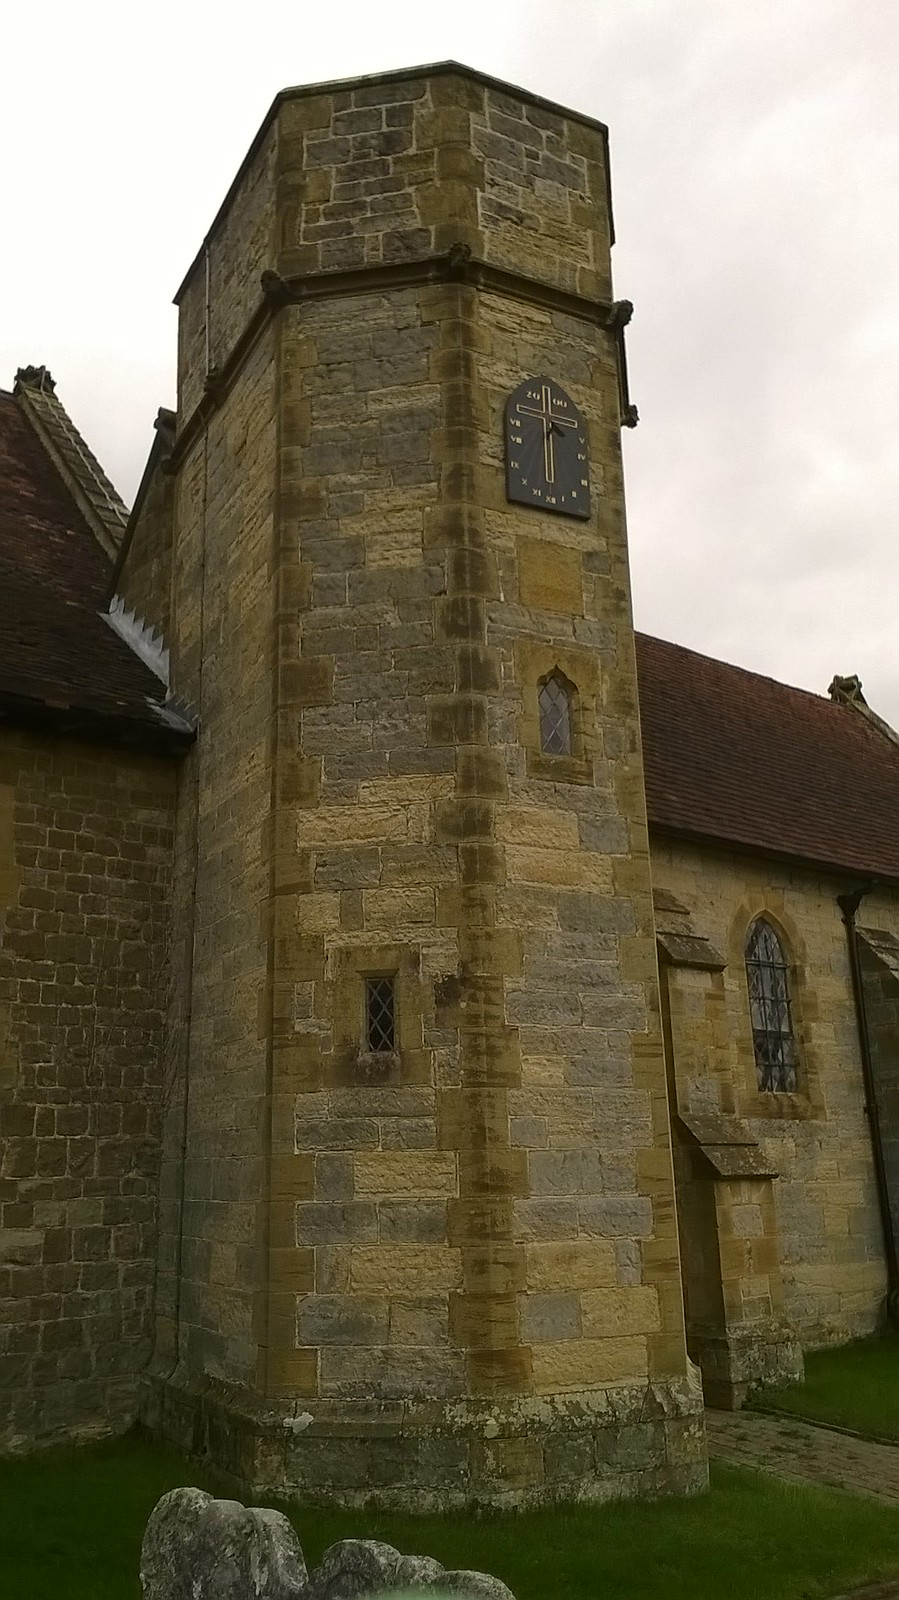 Clock in at Leigh church